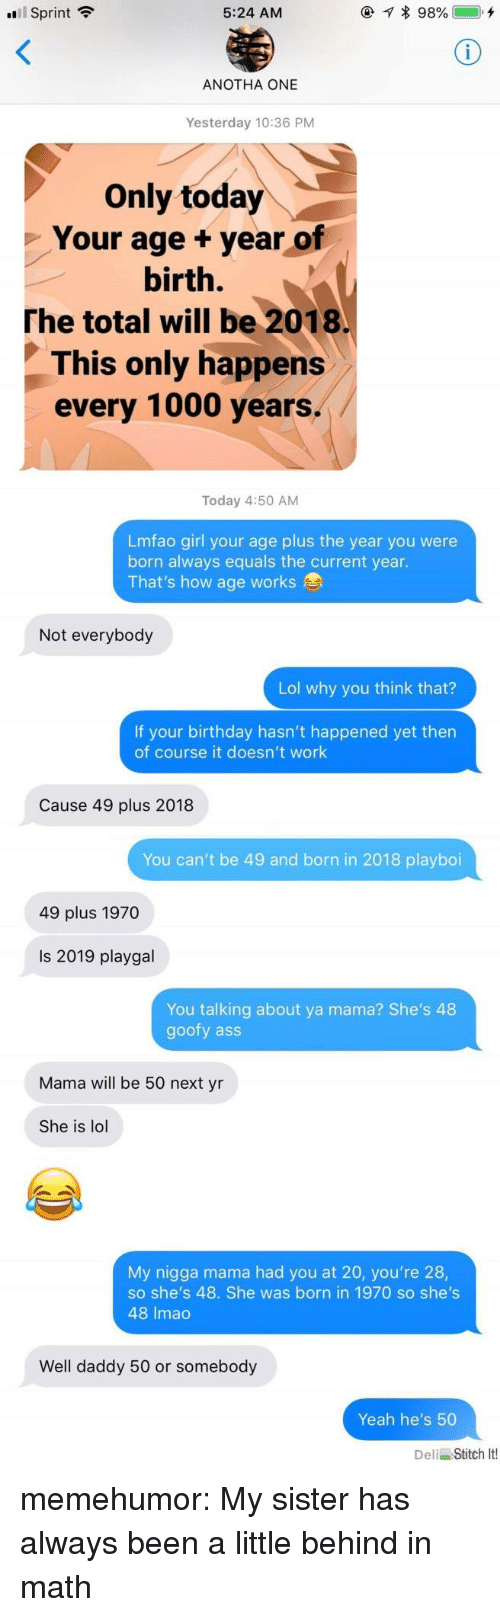 Current Year: Sprint  5:24 AM  ANOTHA ONE  Yesterday 10:36 PM  Only today  Your age +year of  birth.  The total will be 2018.  This only happens  every 1000 years.  Today 4:50 AM  Lmfao girl your age plus the year you were  born always equals the current year.  That's how age works  Not everybody  Lol why you think that?  If your birthday hasn't happened yet then  of course it doesn't work  Cause 49 plus 2018  You can't be 49 and born in 2018 playboi  49 plus 1970  Is 2019 playgal  You talking about ya mama? She's 48  goofy ass  Mama will be 50 next yn  She is lol  My nigga mama had you at 20, you're 28,  so she's 48. She was born in 1970 so she's  48 Imac  Well daddy 50 or somebody  Yeah he's 50  Deli Stitch It! memehumor:  My sister has always been a little behind in math